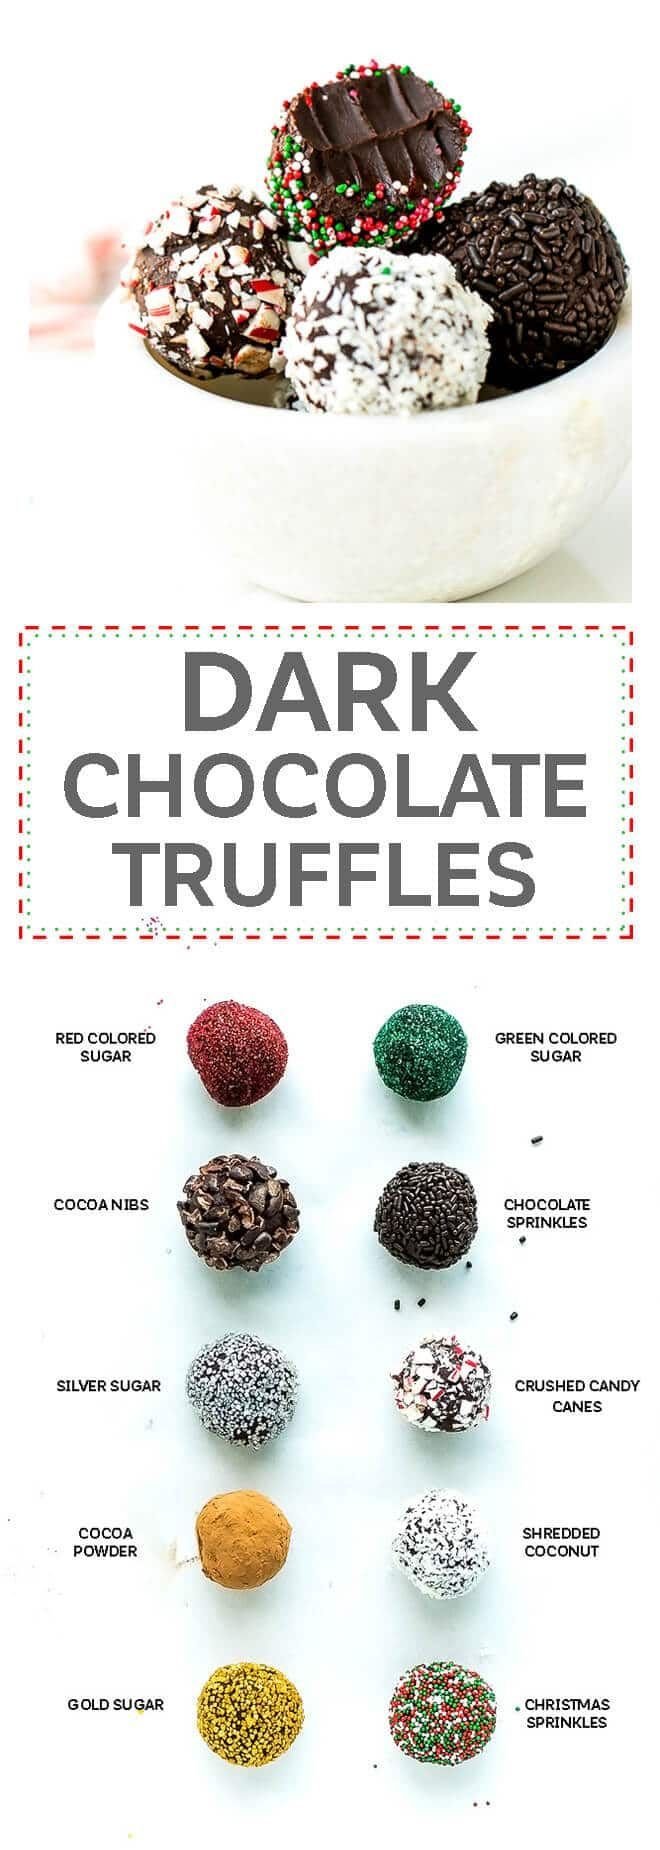 Chocolate Peppermint Truffles Recipe - just 3 simple ingredients + sprinkles and mint ectract. These truffles are easy to make and perfect for an edible gift around the holidays. via @cookinglsl